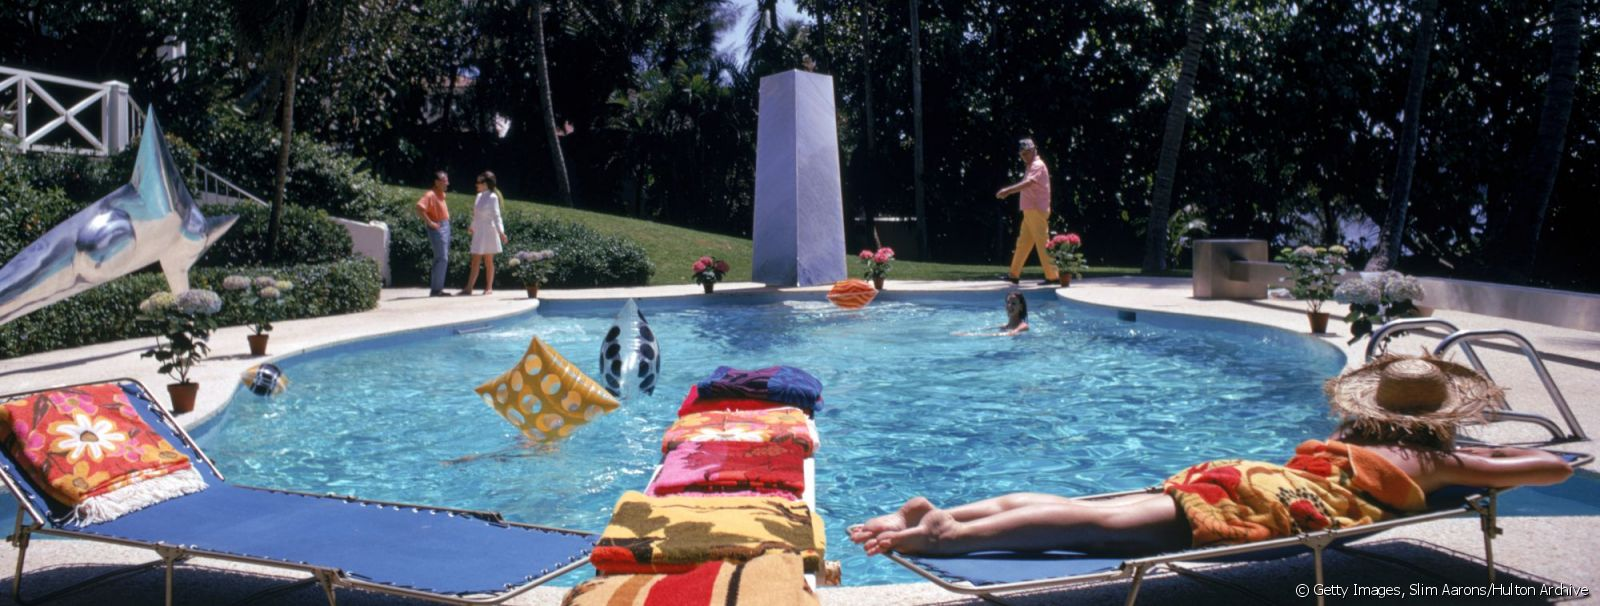 Bathers around the pool at 'Four Winds', the home of J. Patrick Lannan, in Palm Beach, Florida, April 1968.